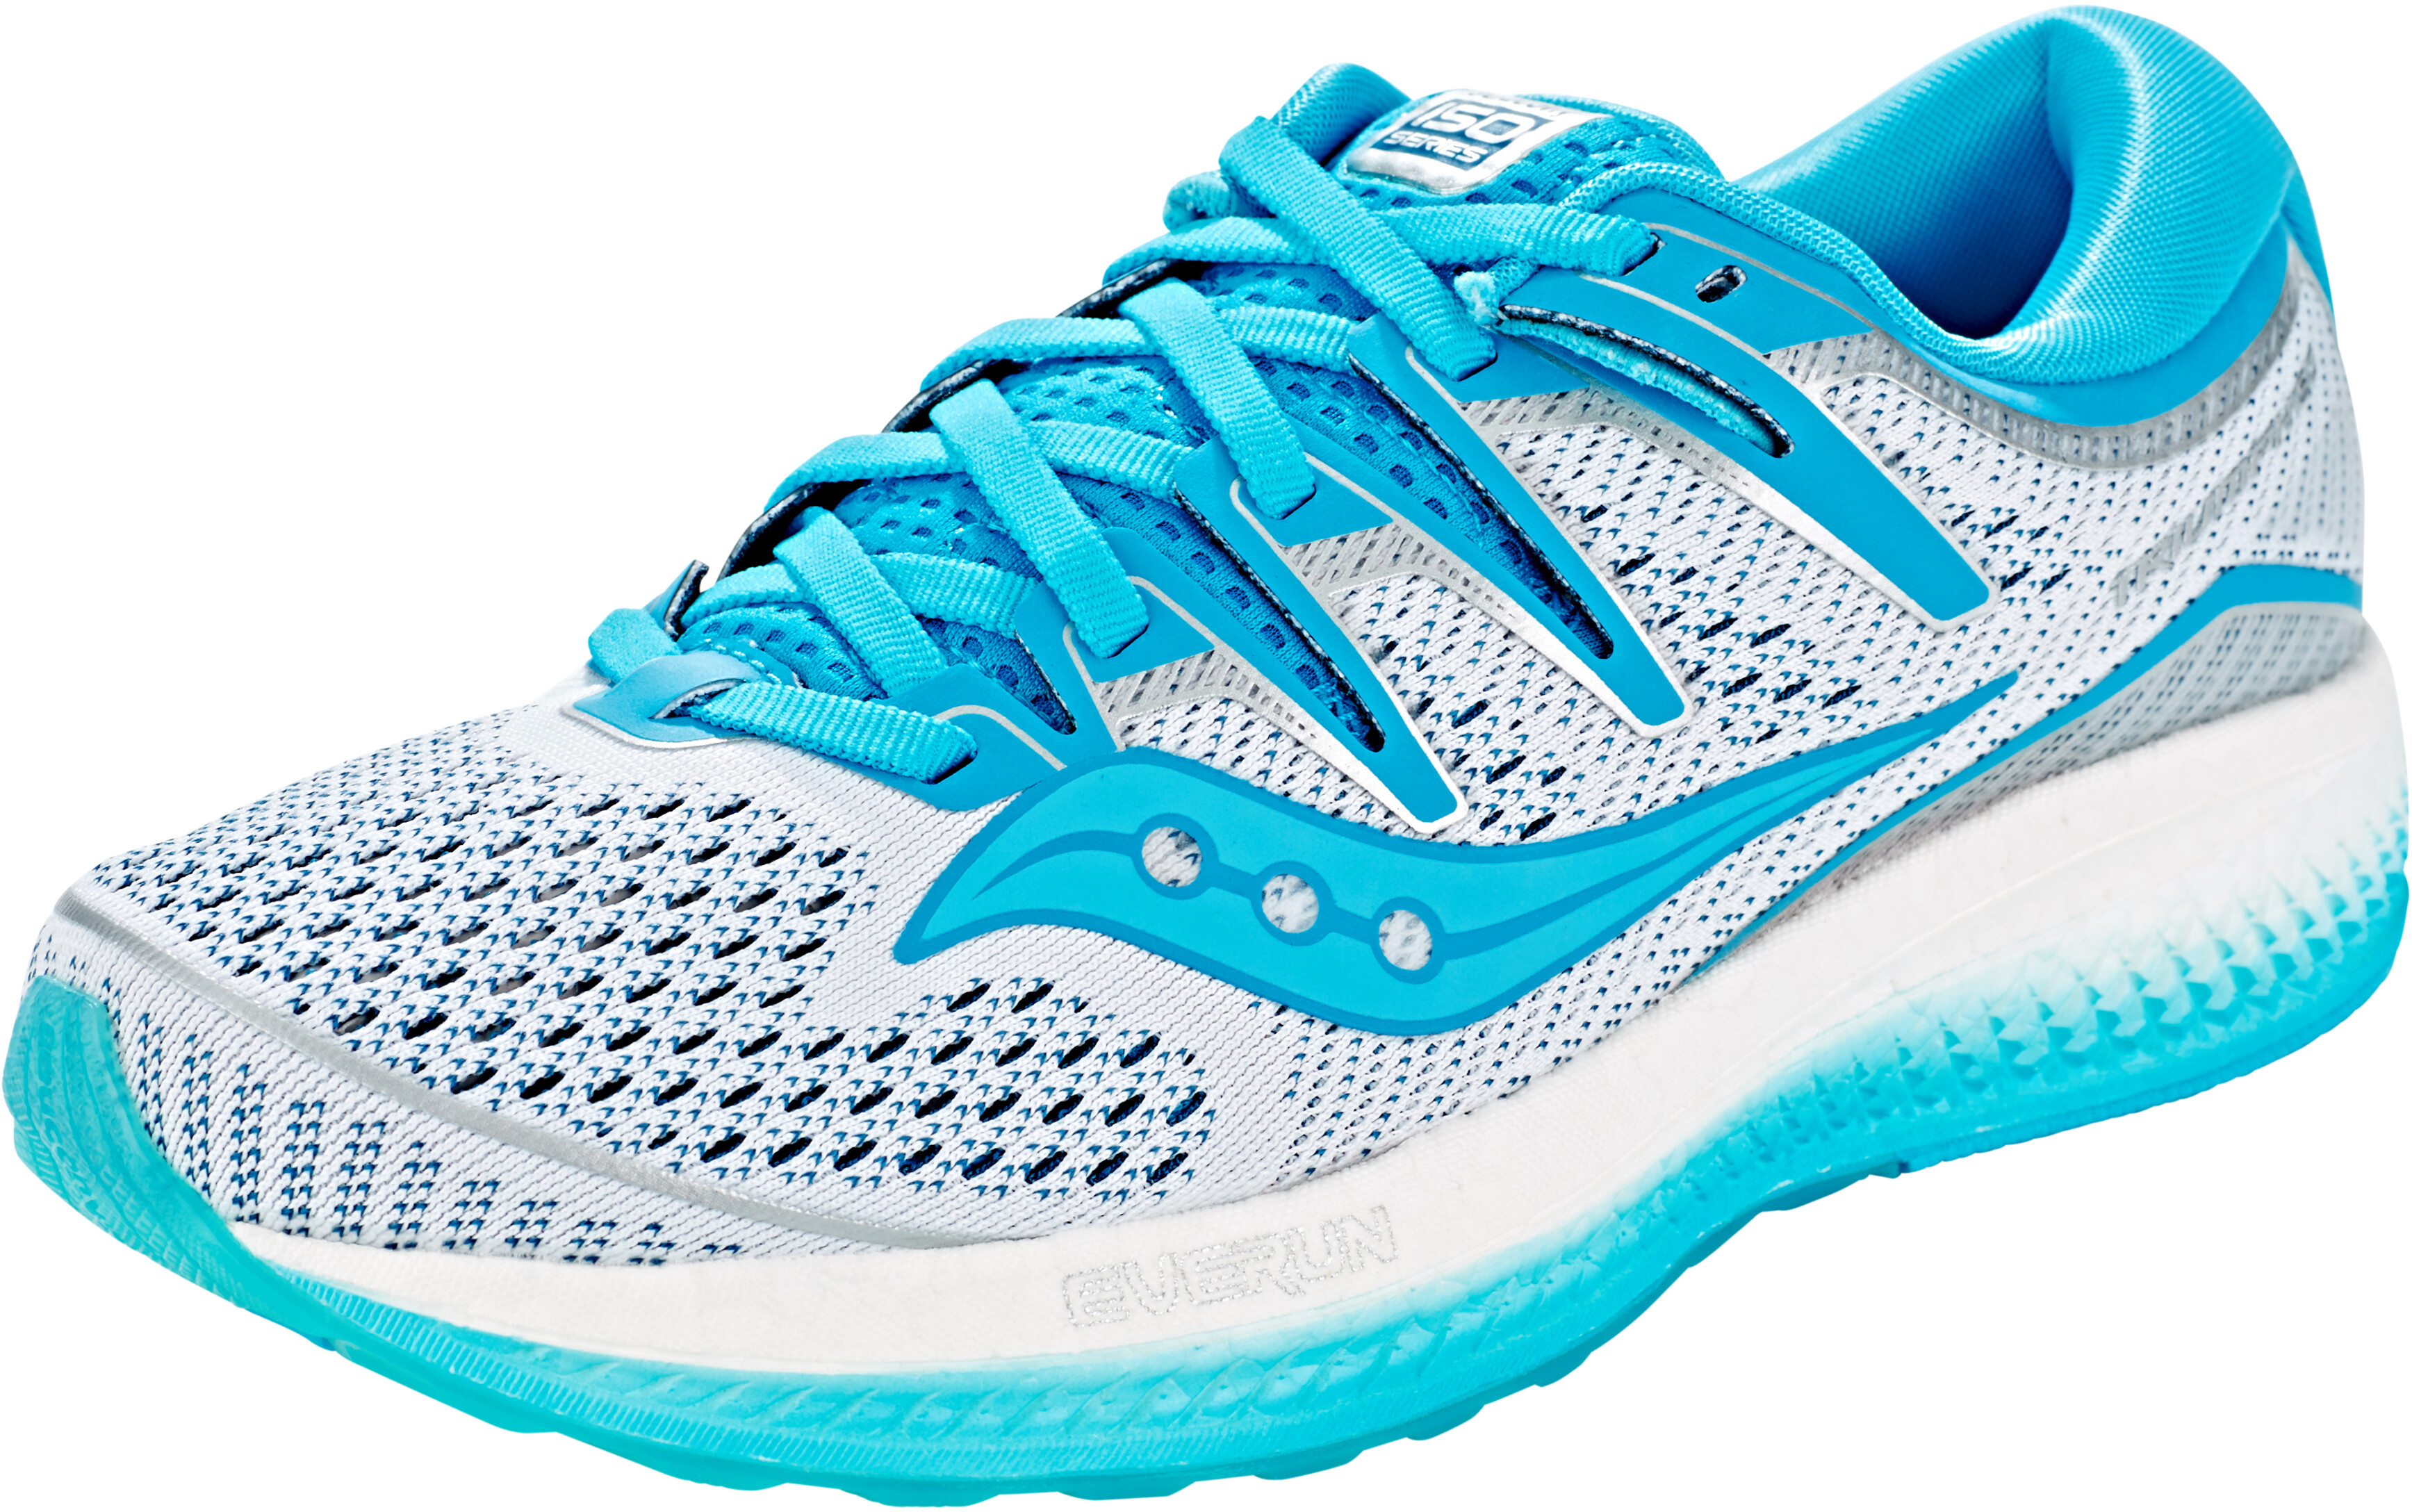 08c09f1cdd8 saucony Triumph ISO 5 - Chaussures running Femme - blanc turquoise ...